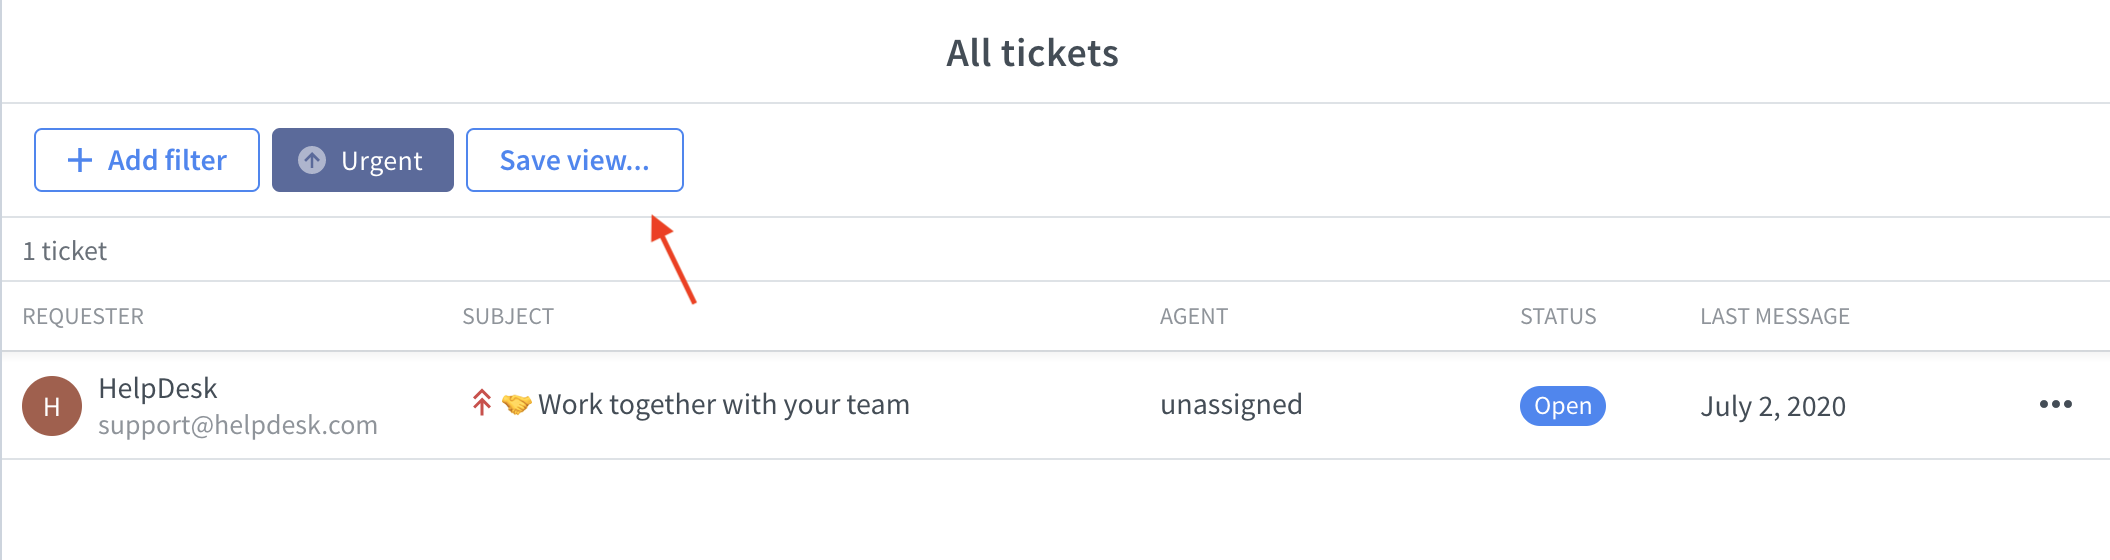 Saving the view with filtered ticket priority